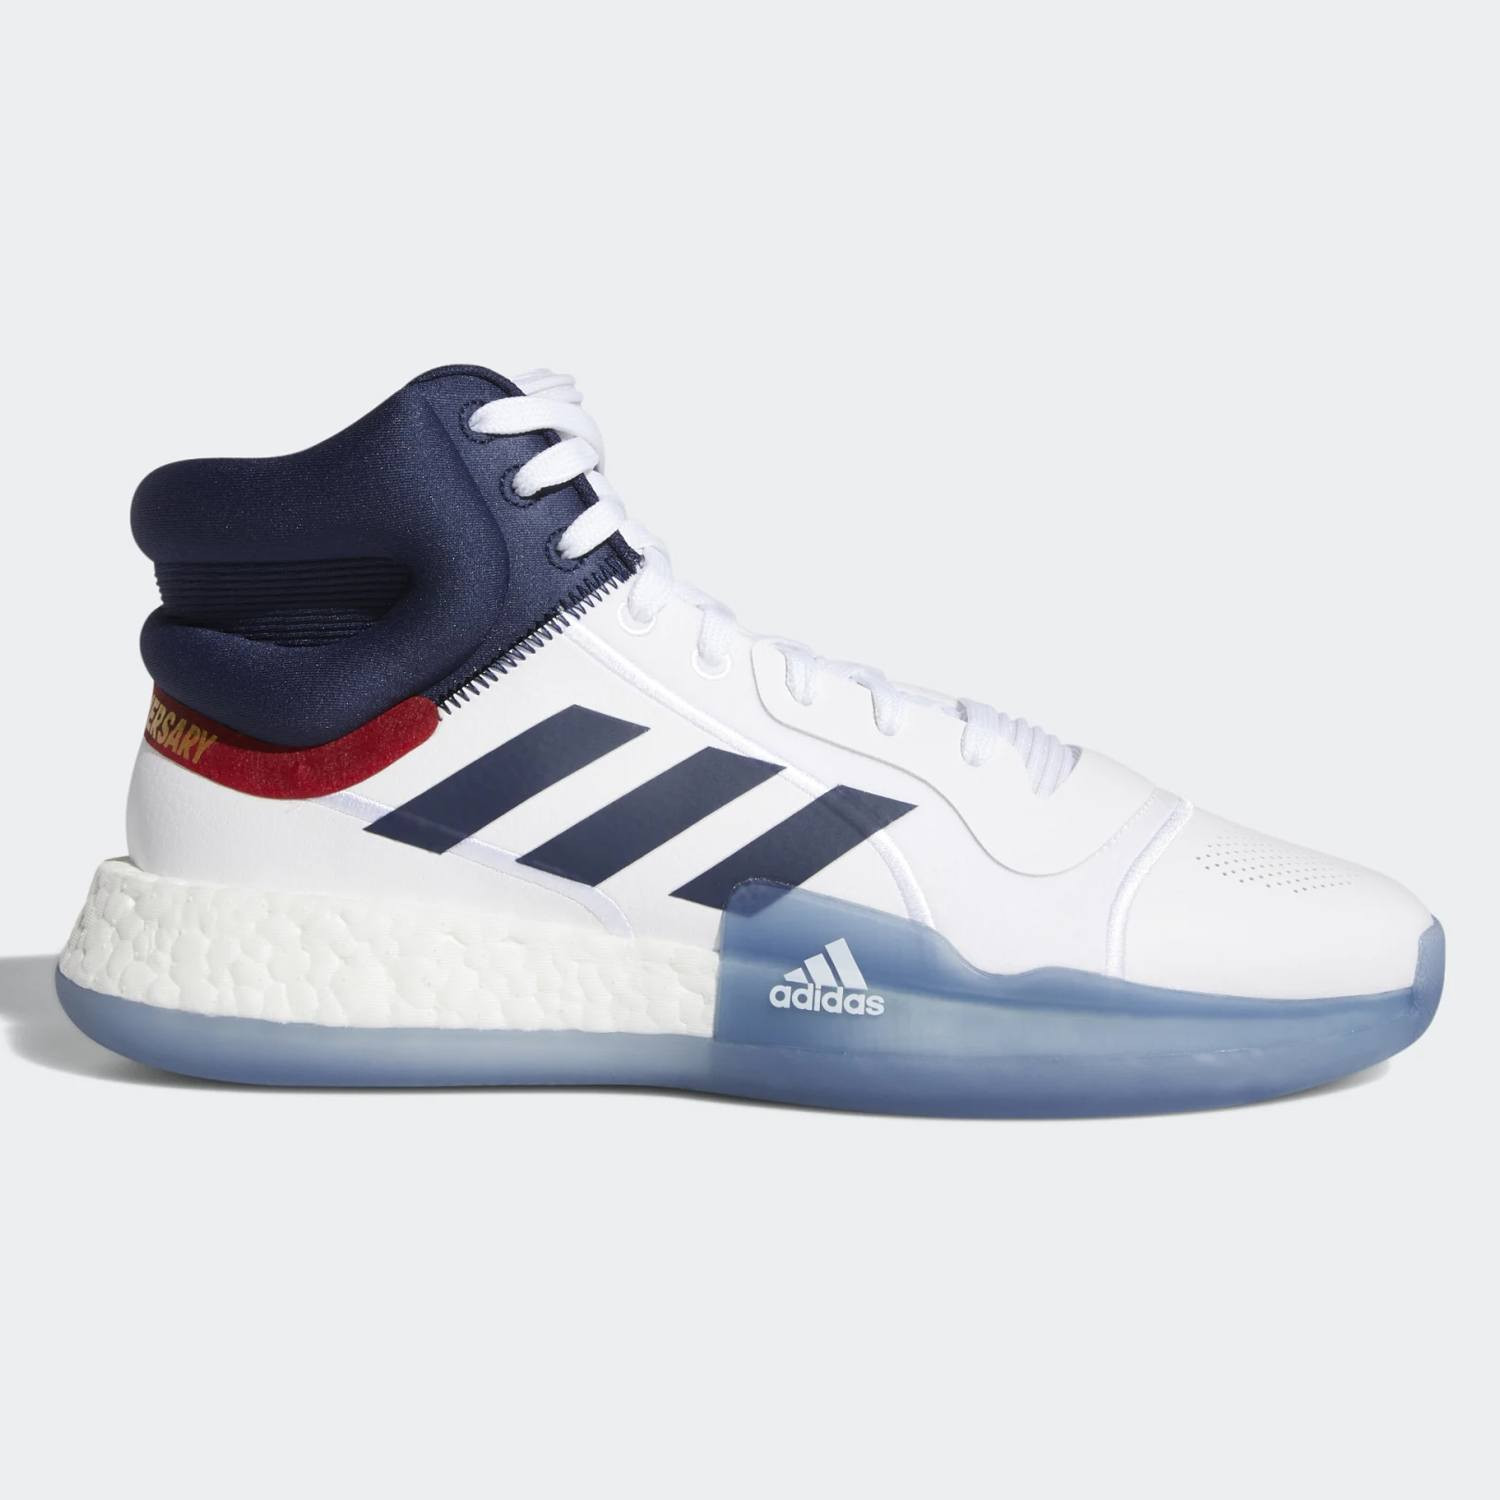 adidas Marquee Boost - Hype Pack